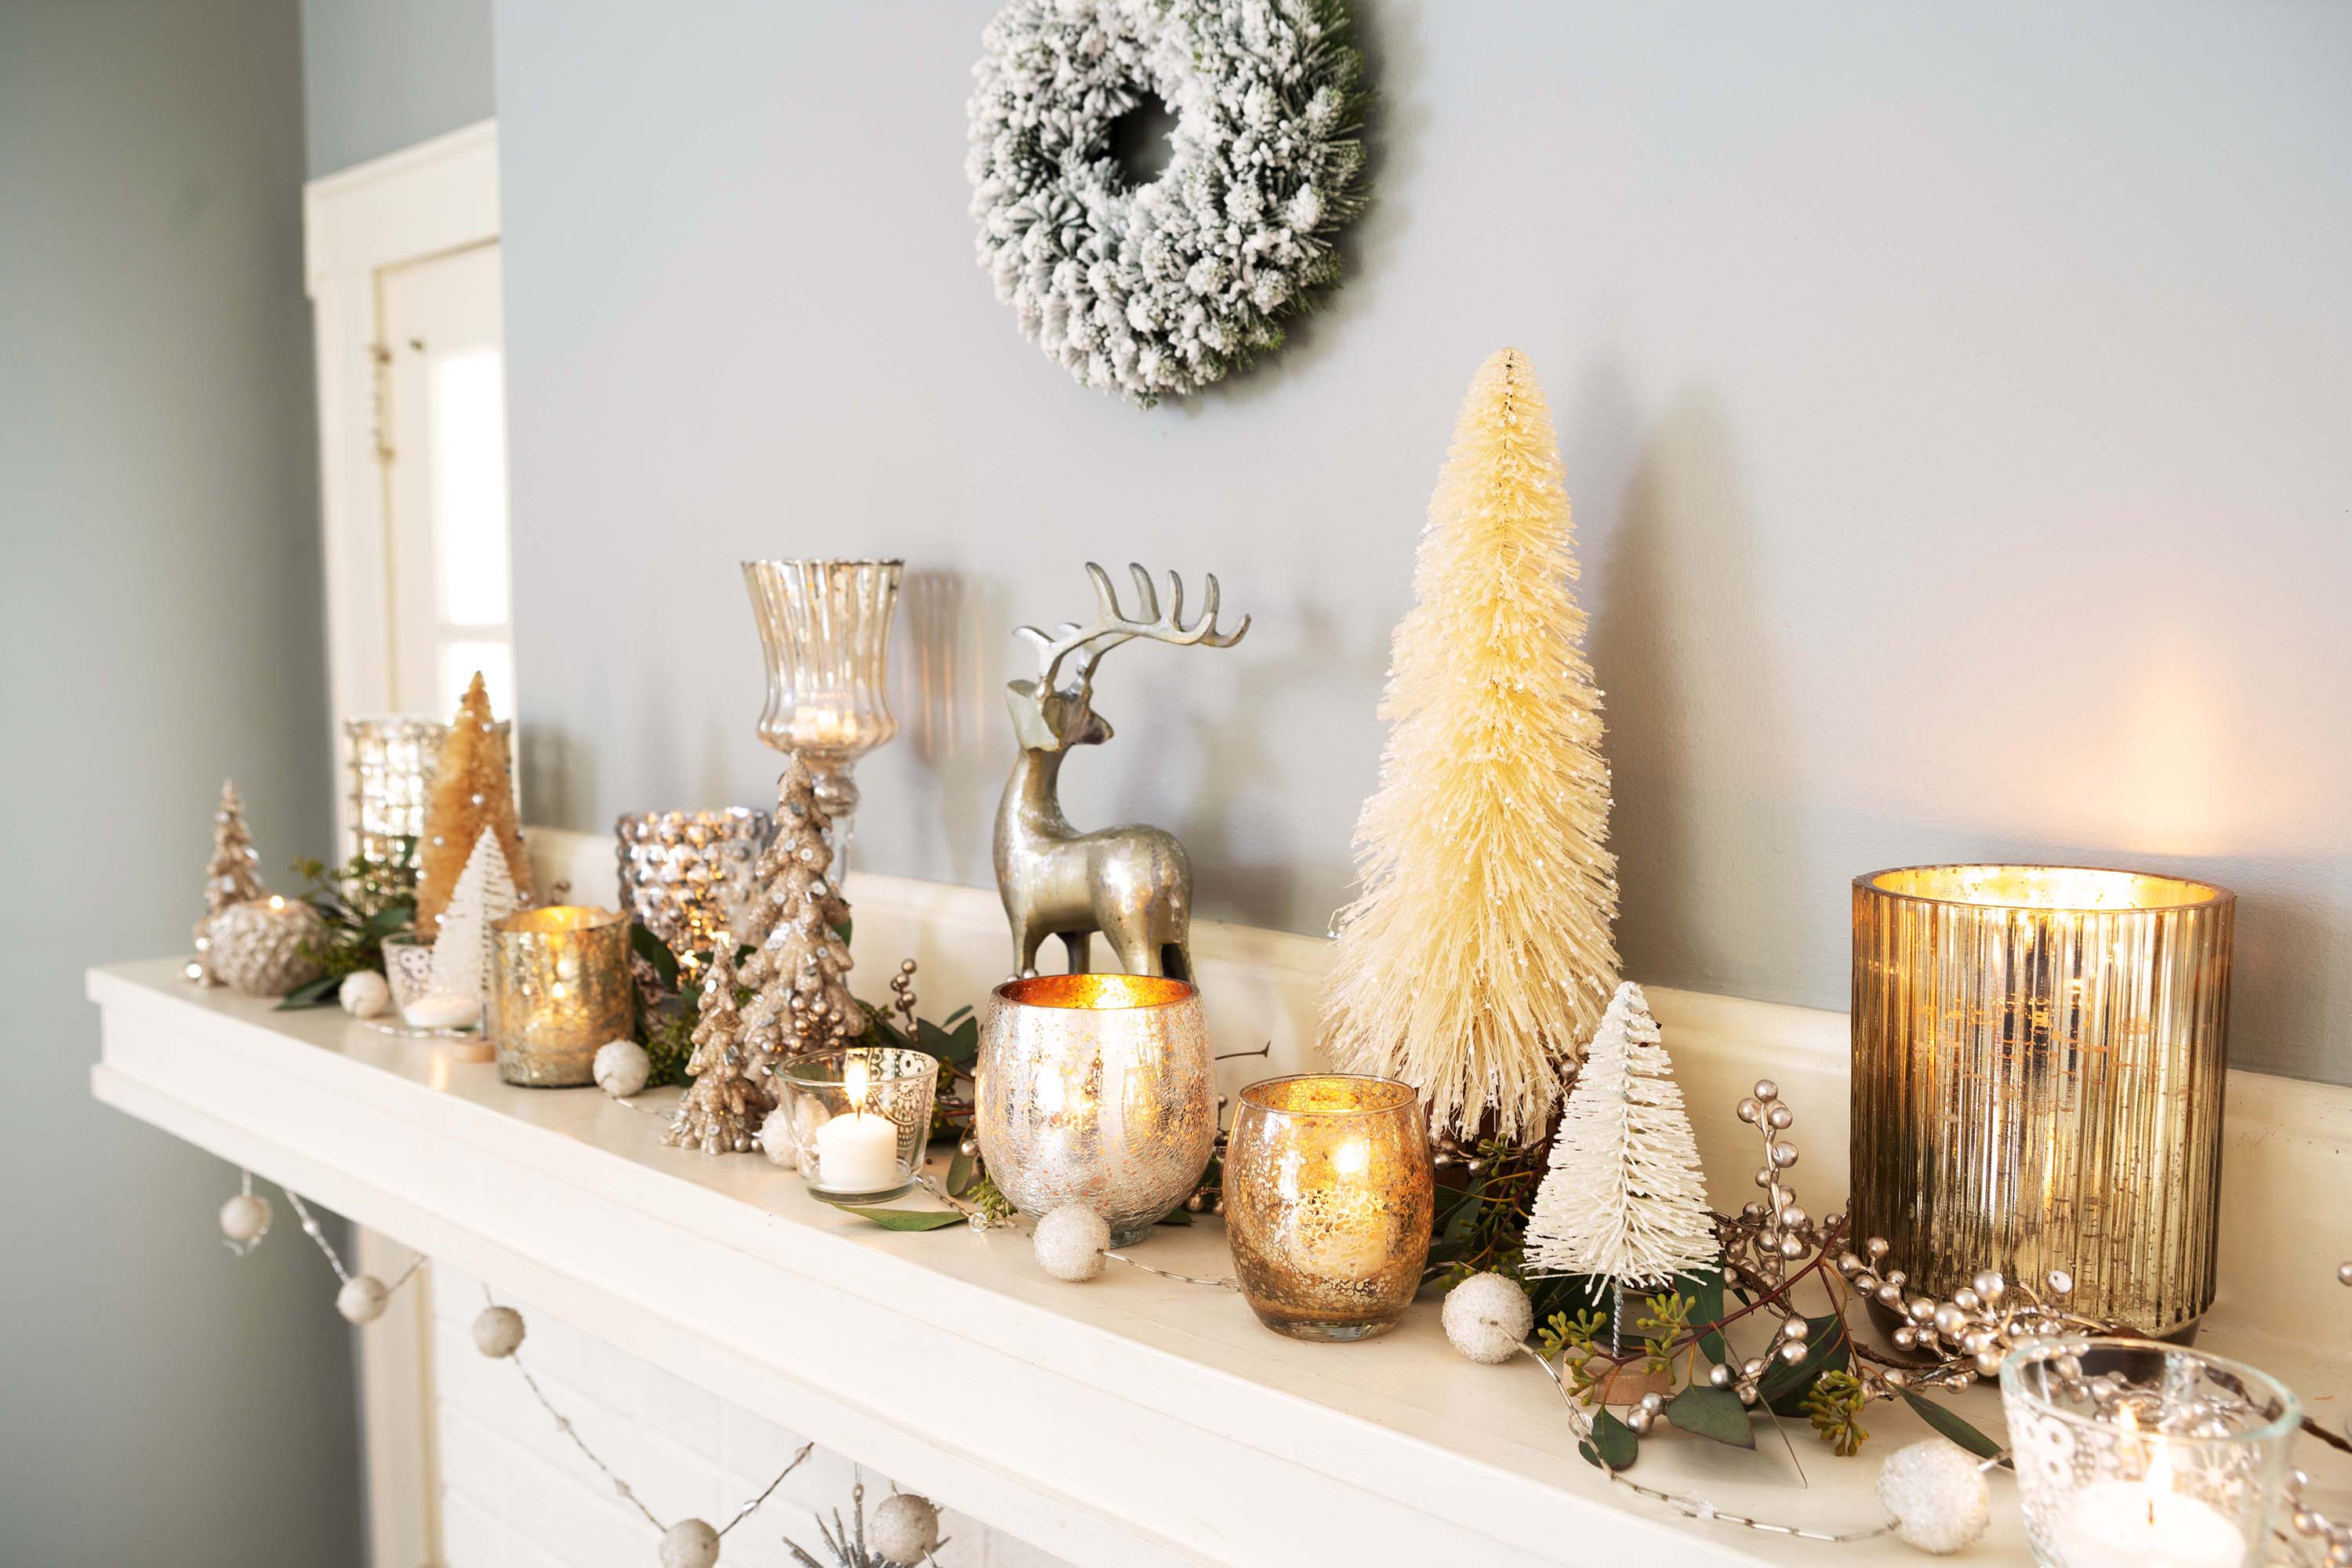 A decorated fireplace mantel